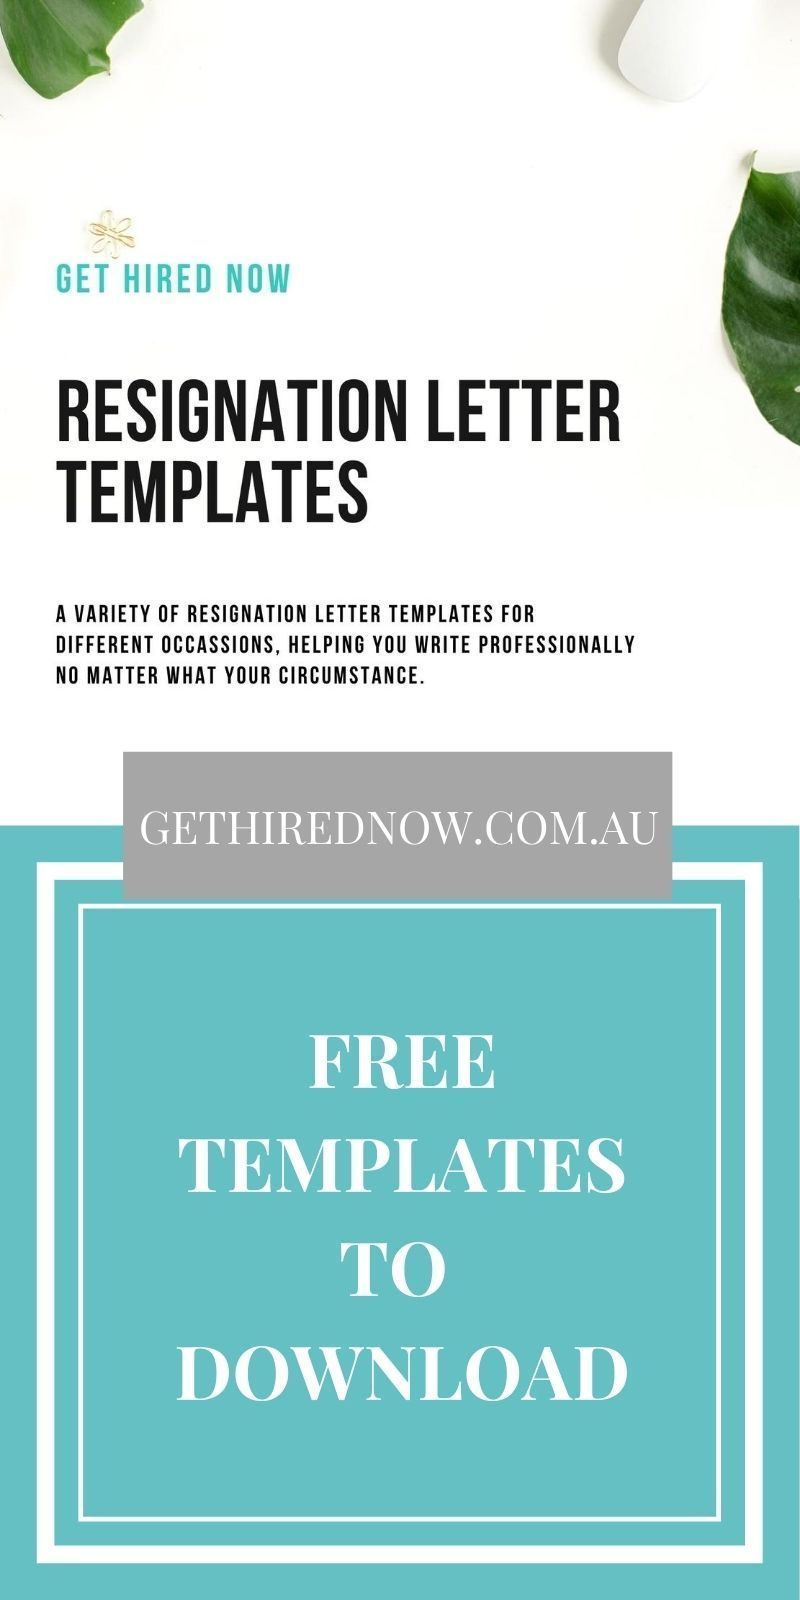 Get Hired Now Resume Writing FREE Resignation Letter